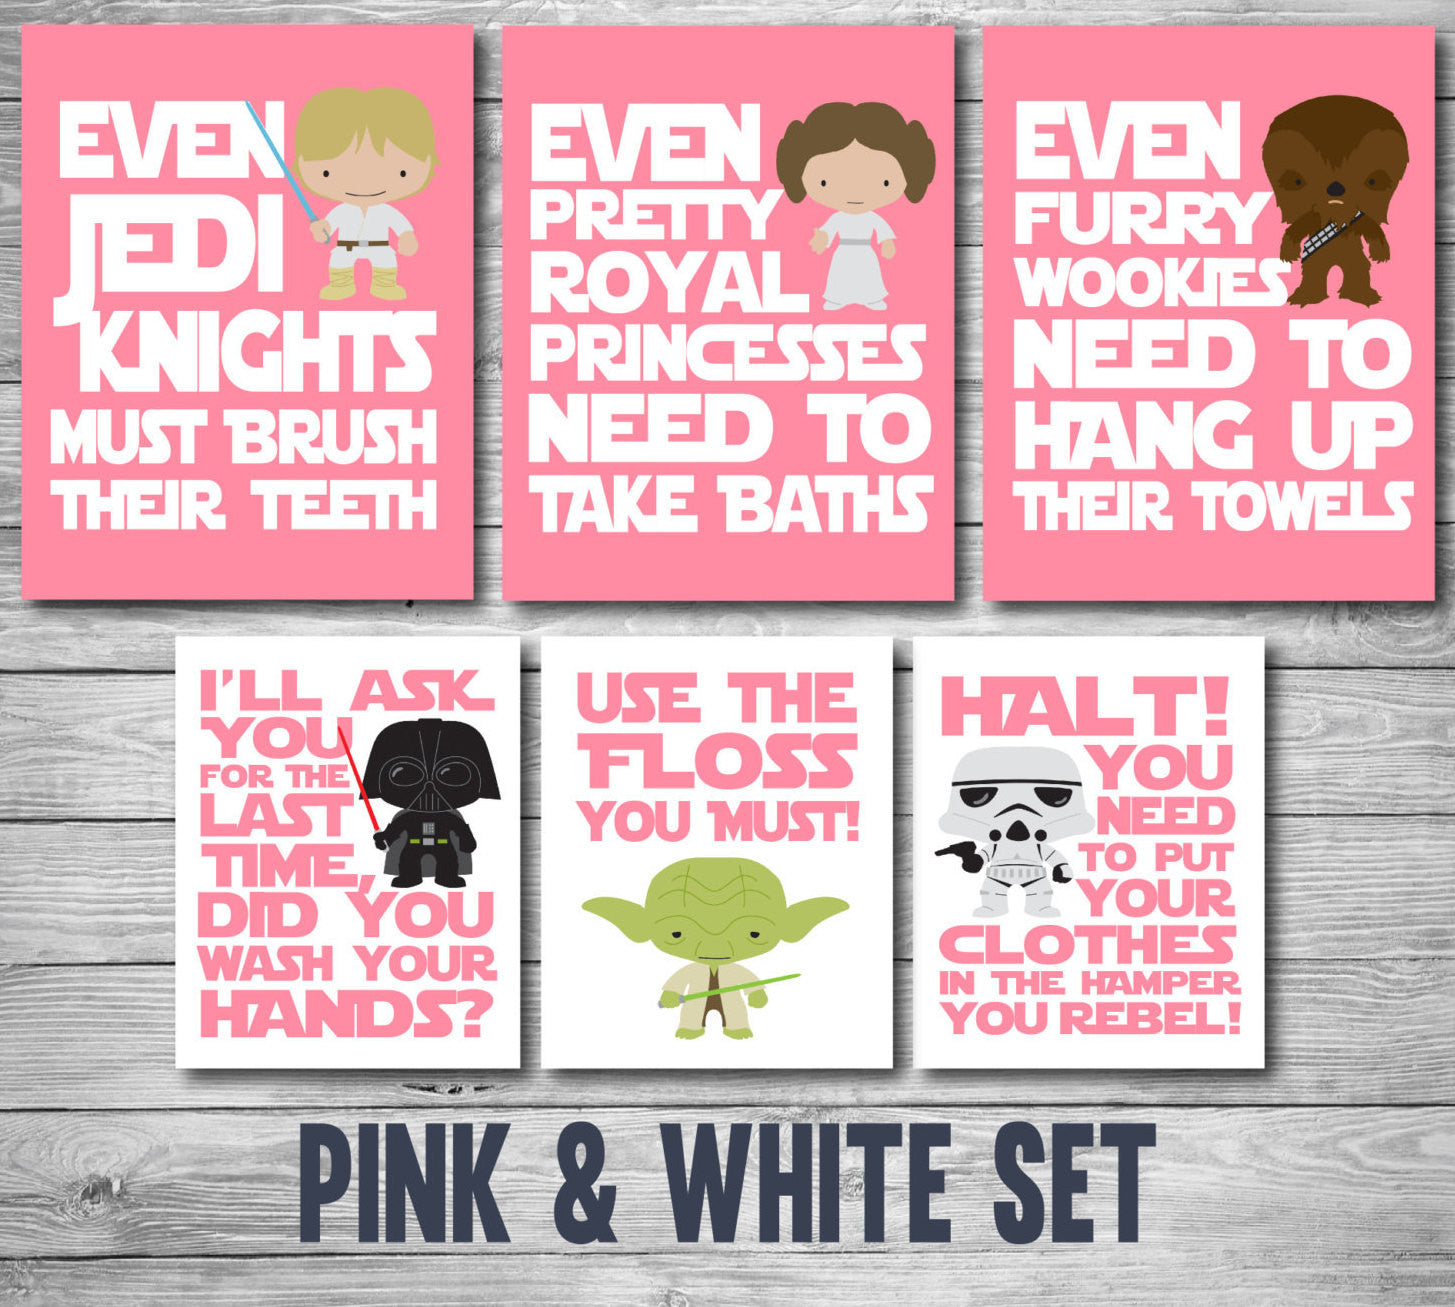 Star Wars Bathroom Prints - 3 Color Options - Star Wars Kids, Bathroom Decor, Printable Art, Star Wars Gift, Home Decor, Gift for Her